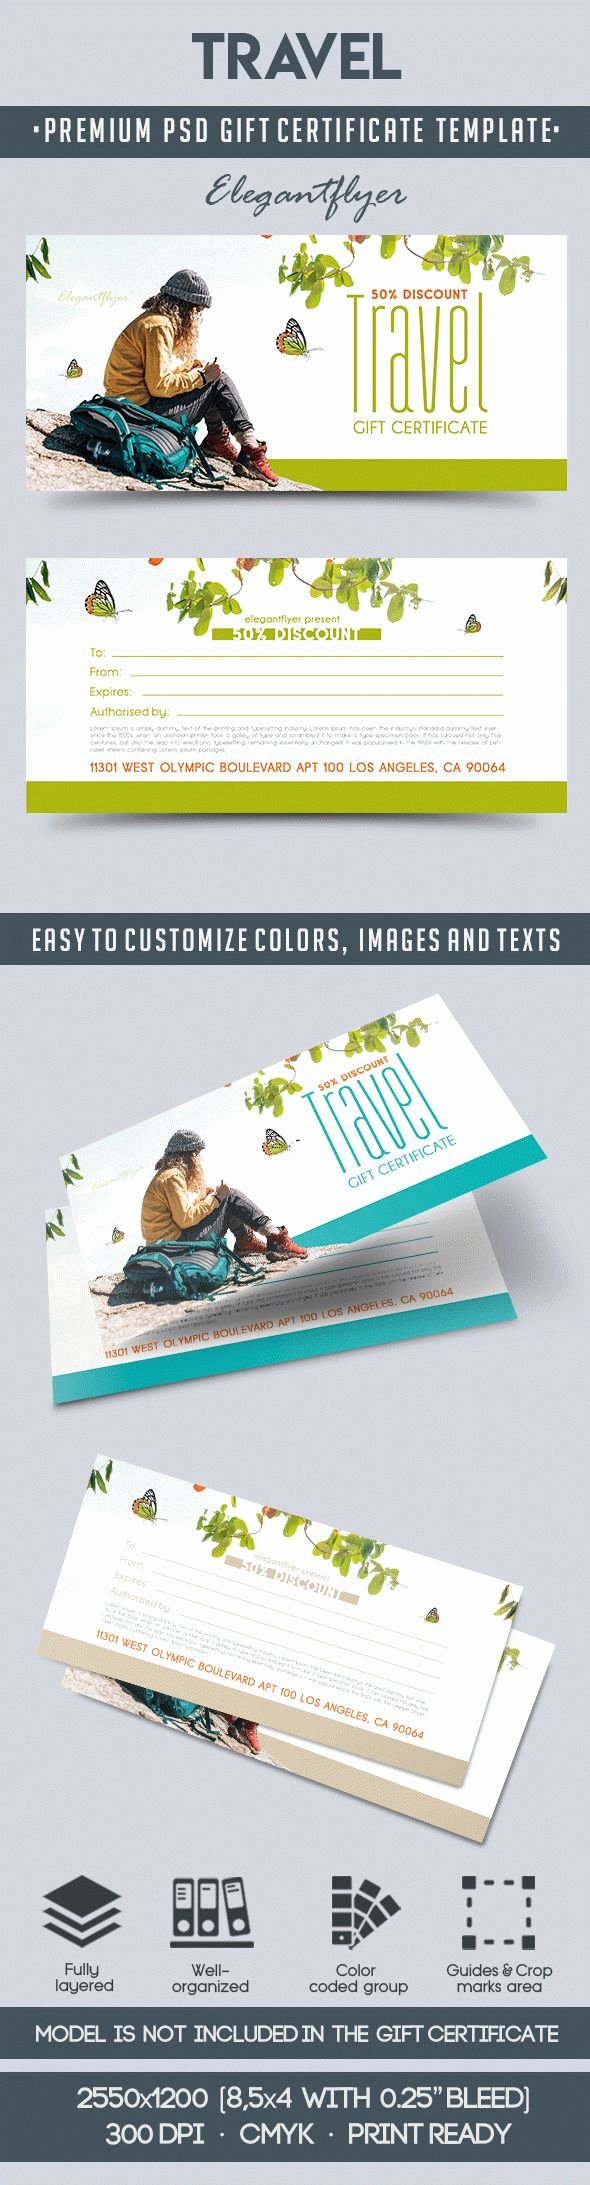 Vacation Gift Certificate Template Awesome Travel Gift Voucher Template In Psd – by Elegantflyer